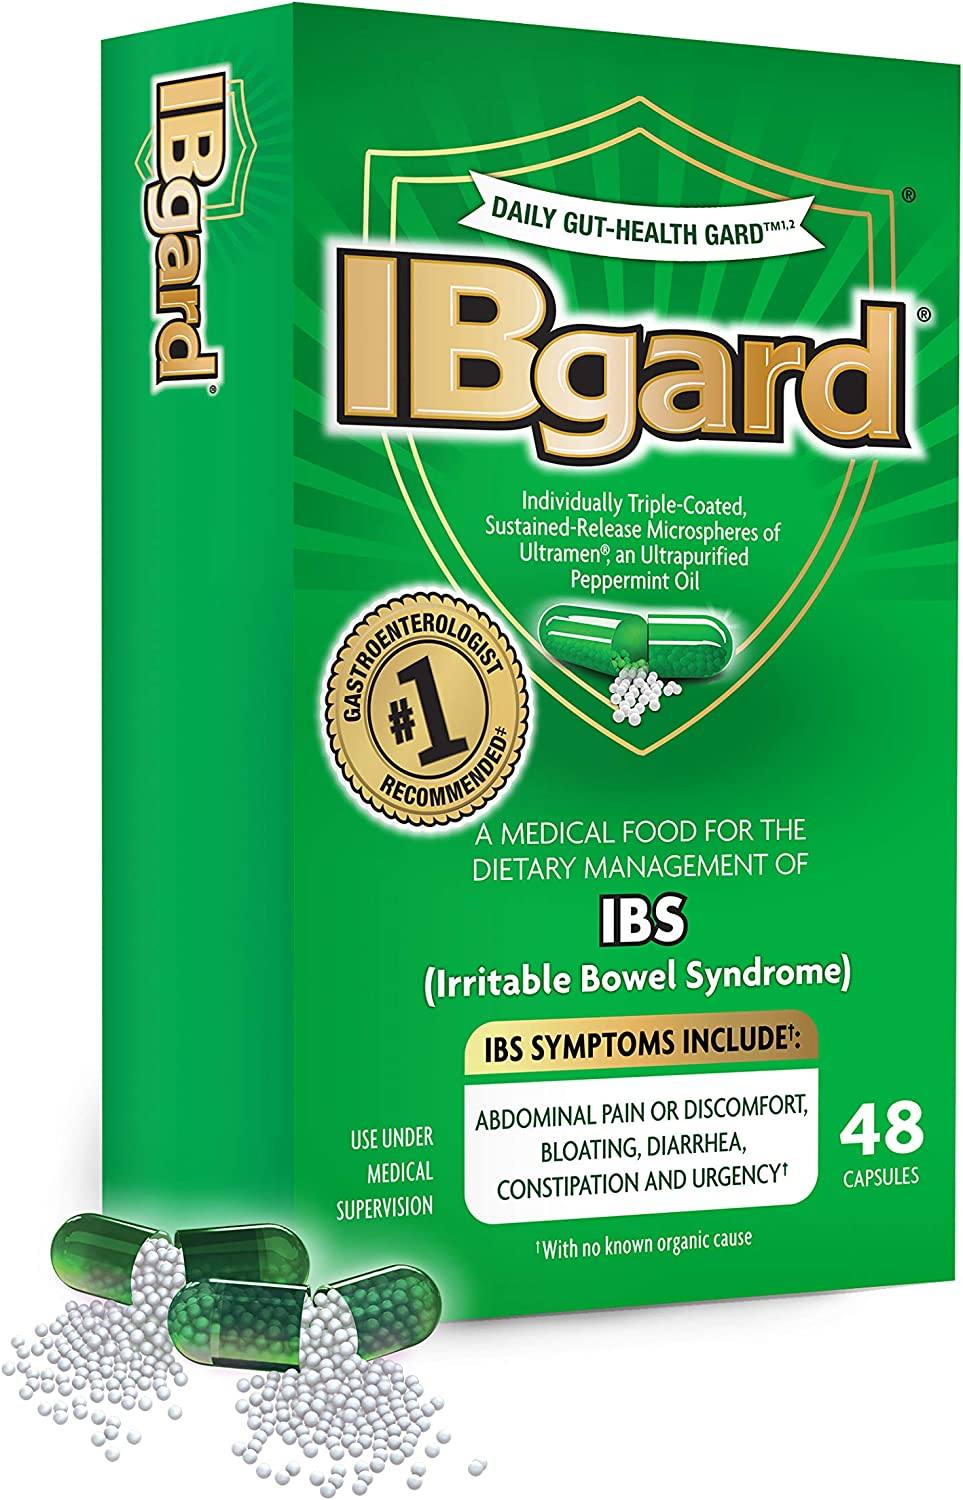 Amazon.com: IBgard® for The Dietary Management of Irritable Bowel Syndrome  (IBS) Symptoms Including, Abdominal Pain, Bloating, Diarrhea,  Constipation†*, 48 Capsules: Health & Personal Care